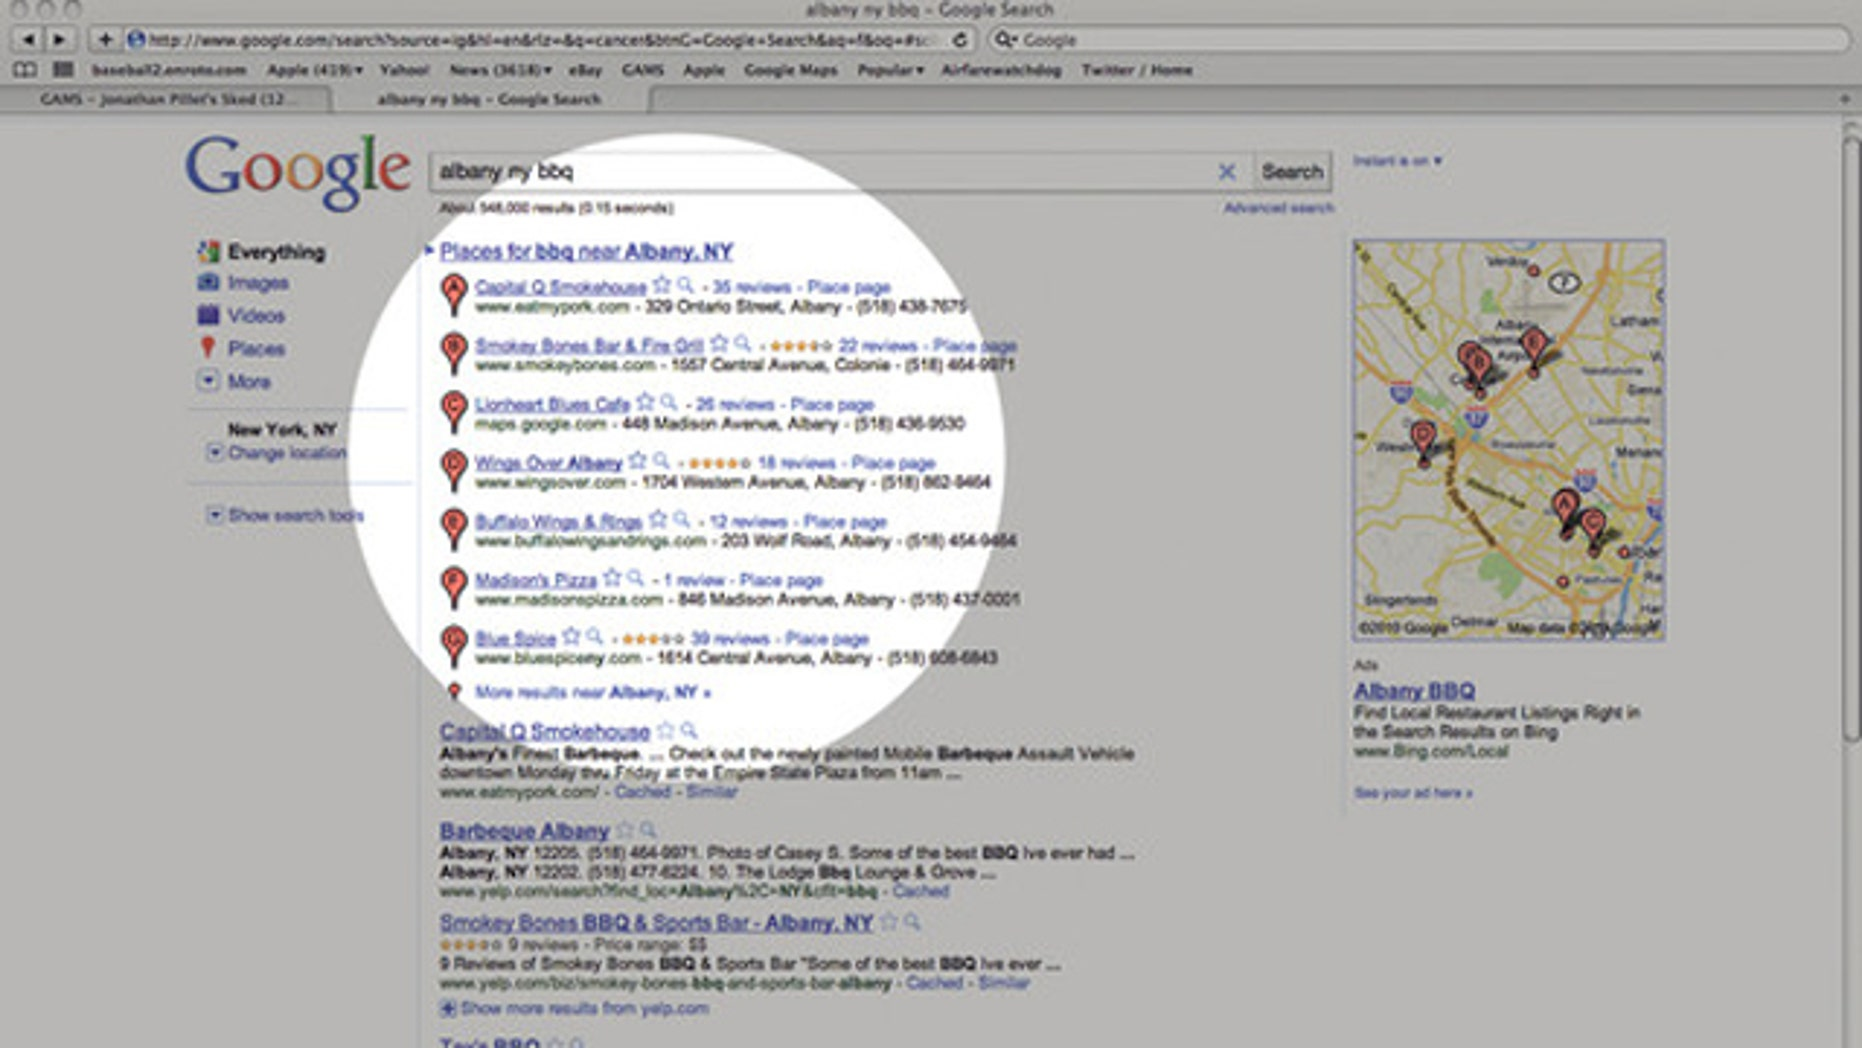 Google tops search results with its new place service.